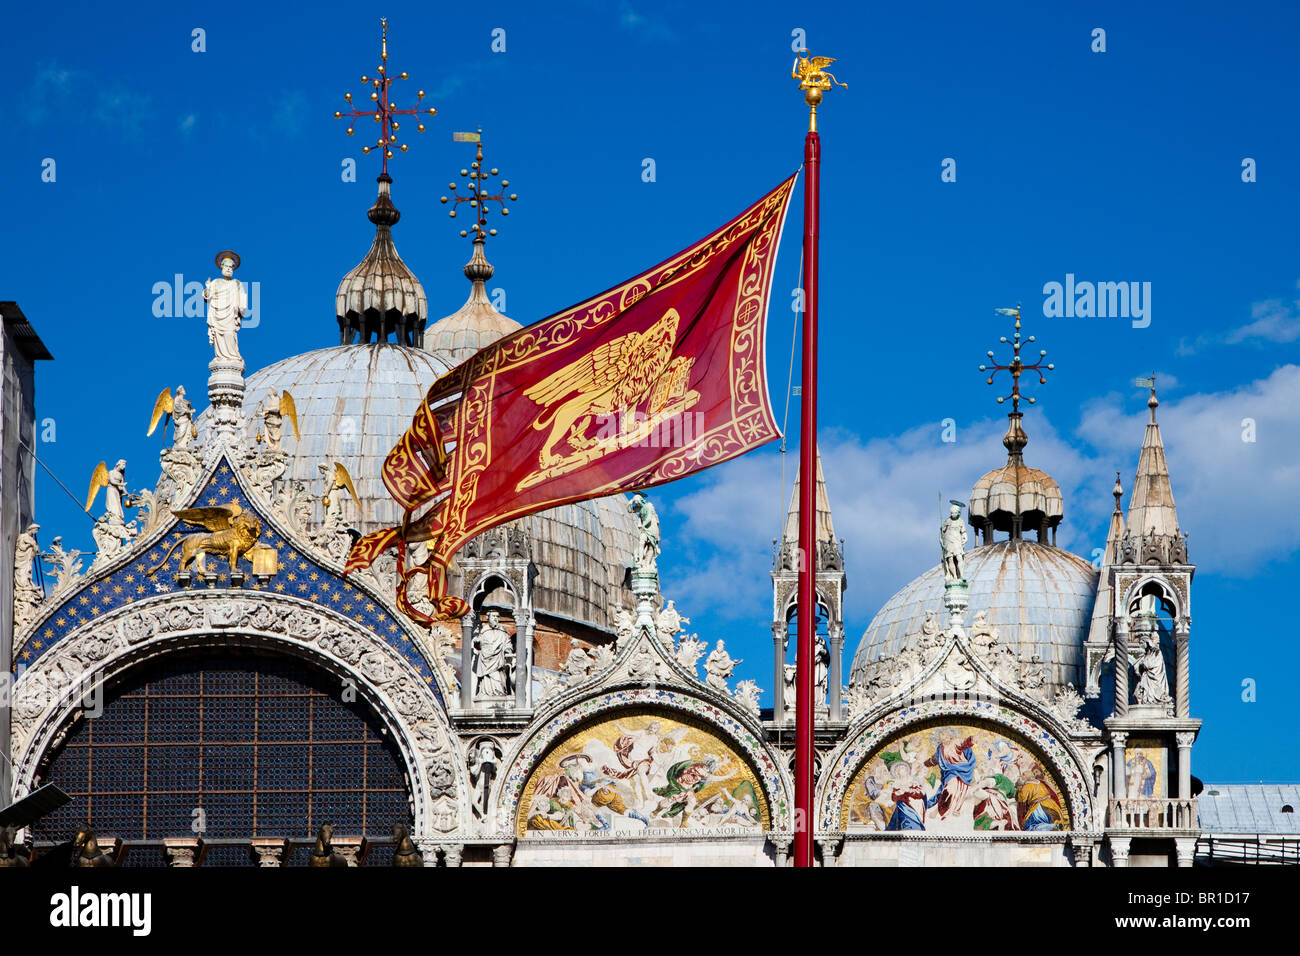 Roof of the basilica at San Marco Square, Venice, Italy - Stock Image